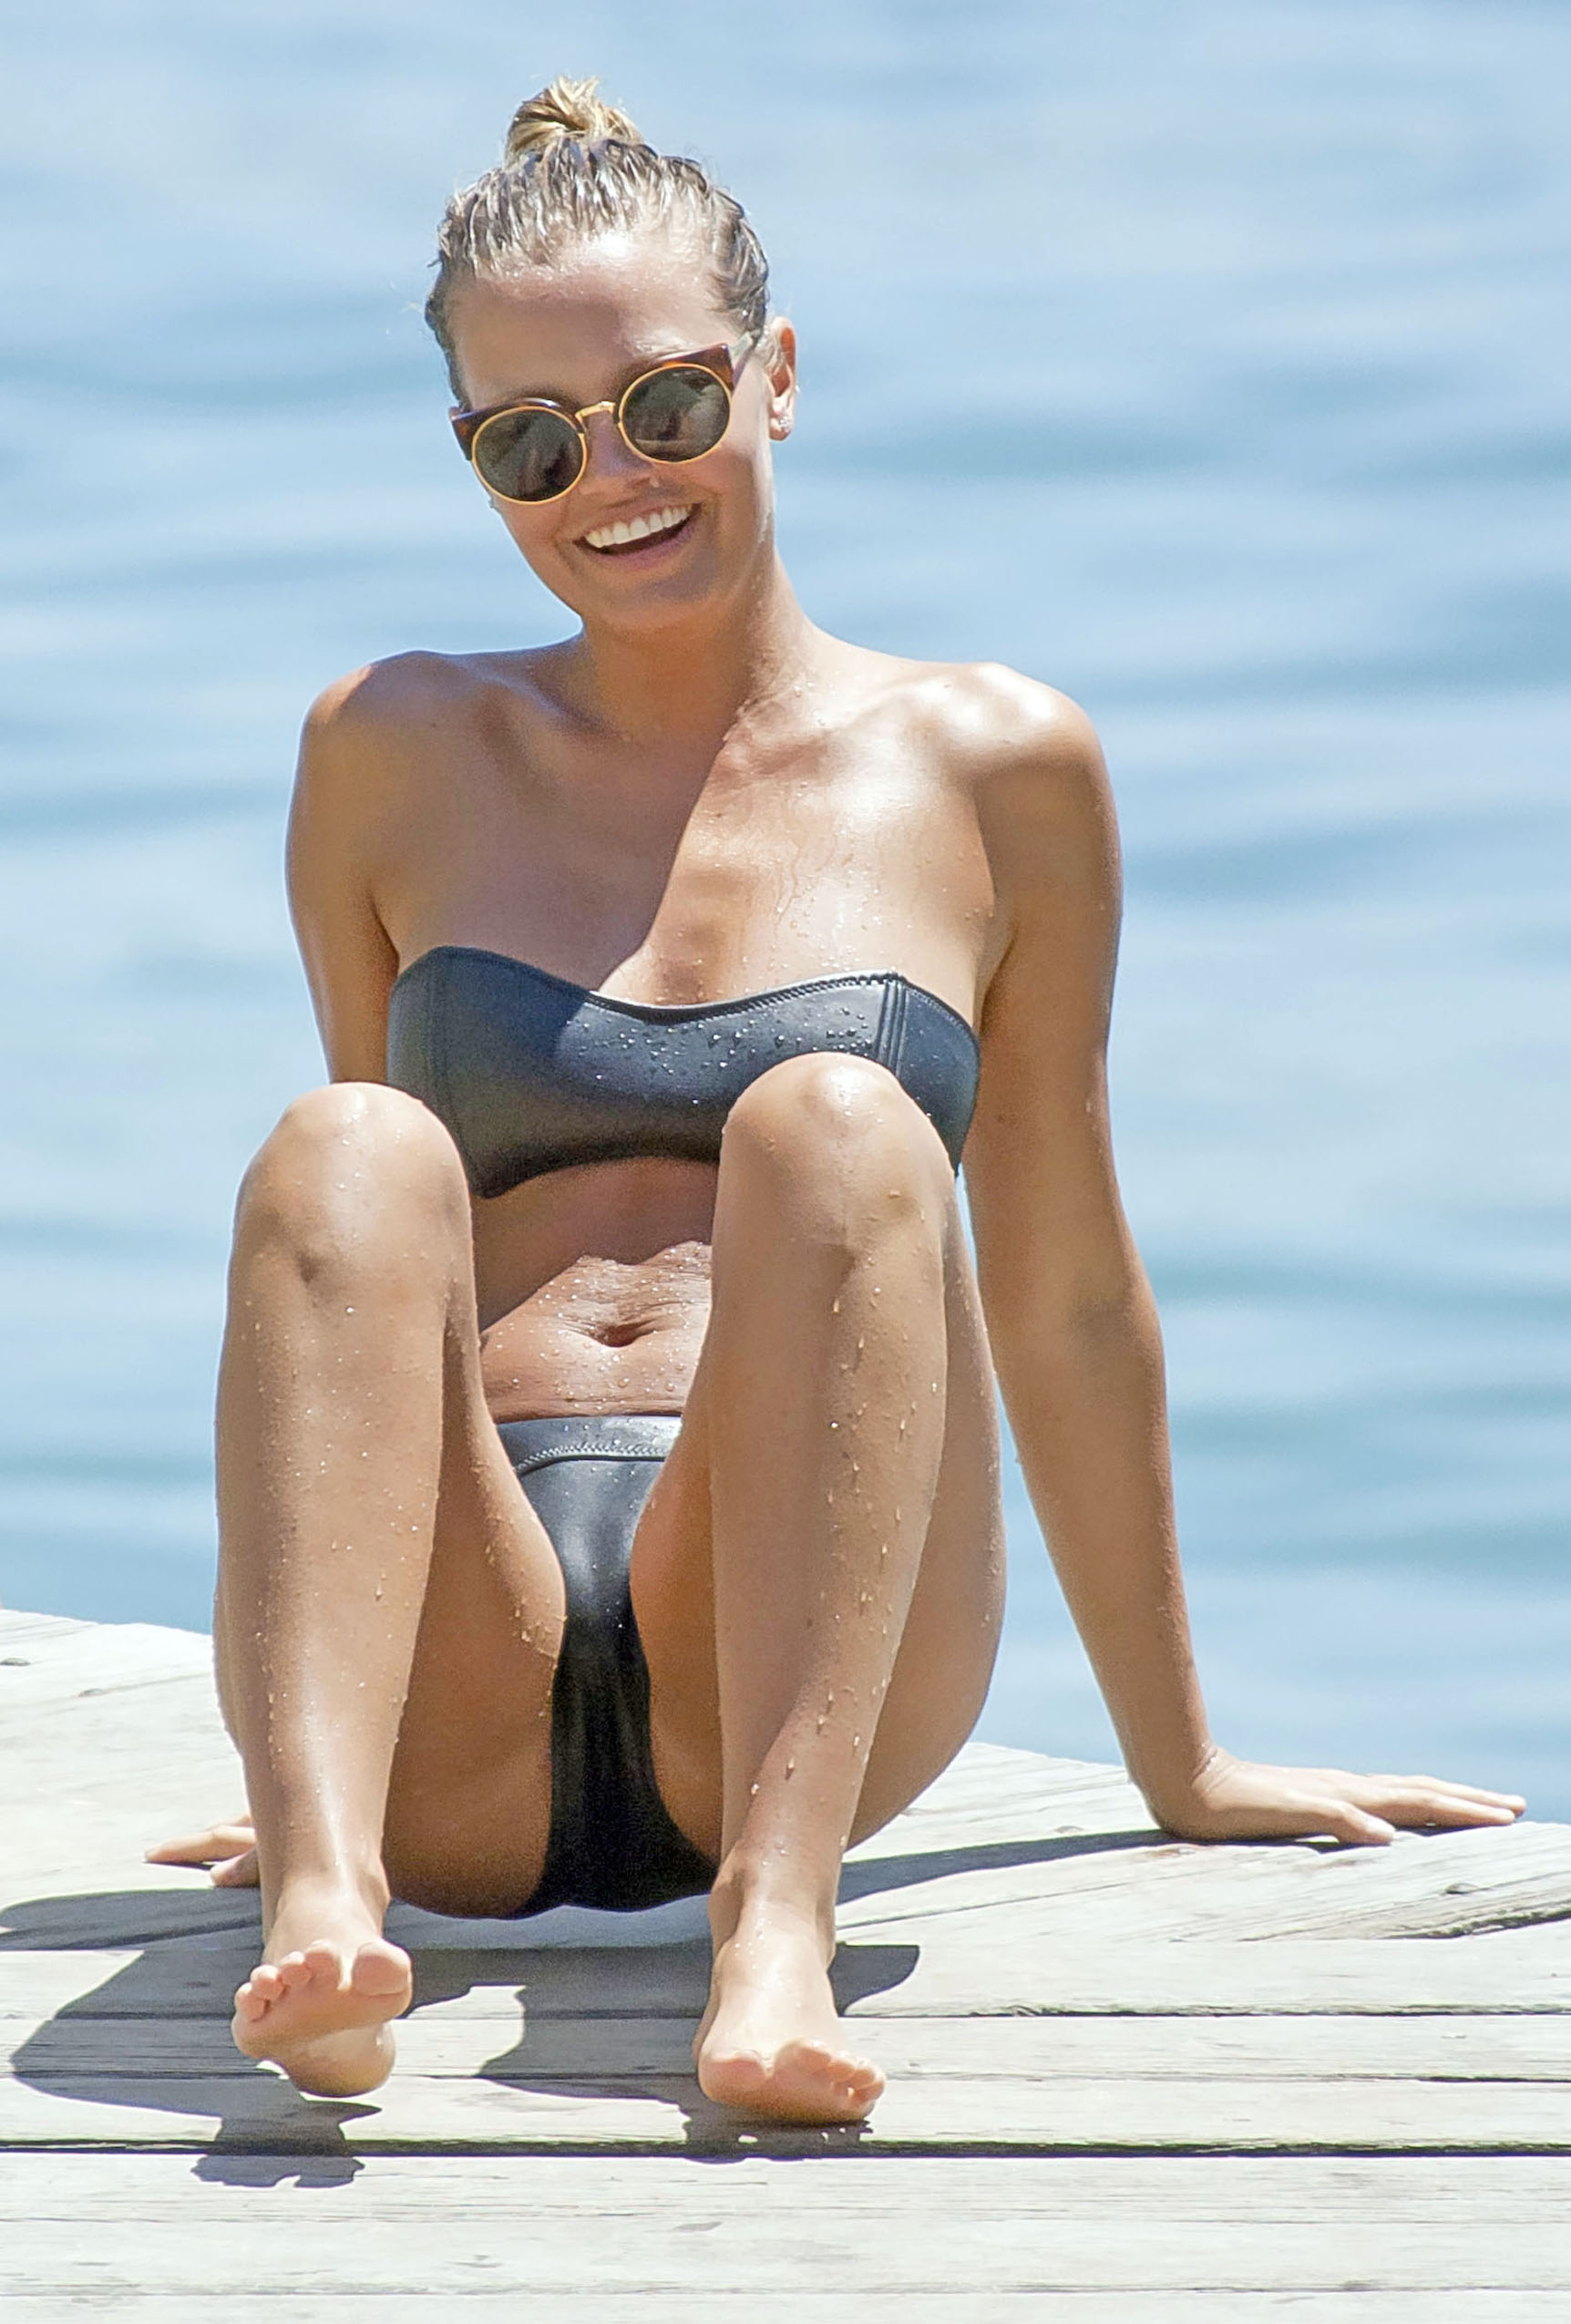 Busty Lara Bingle tanning topless on Bondi Beach in Sydney